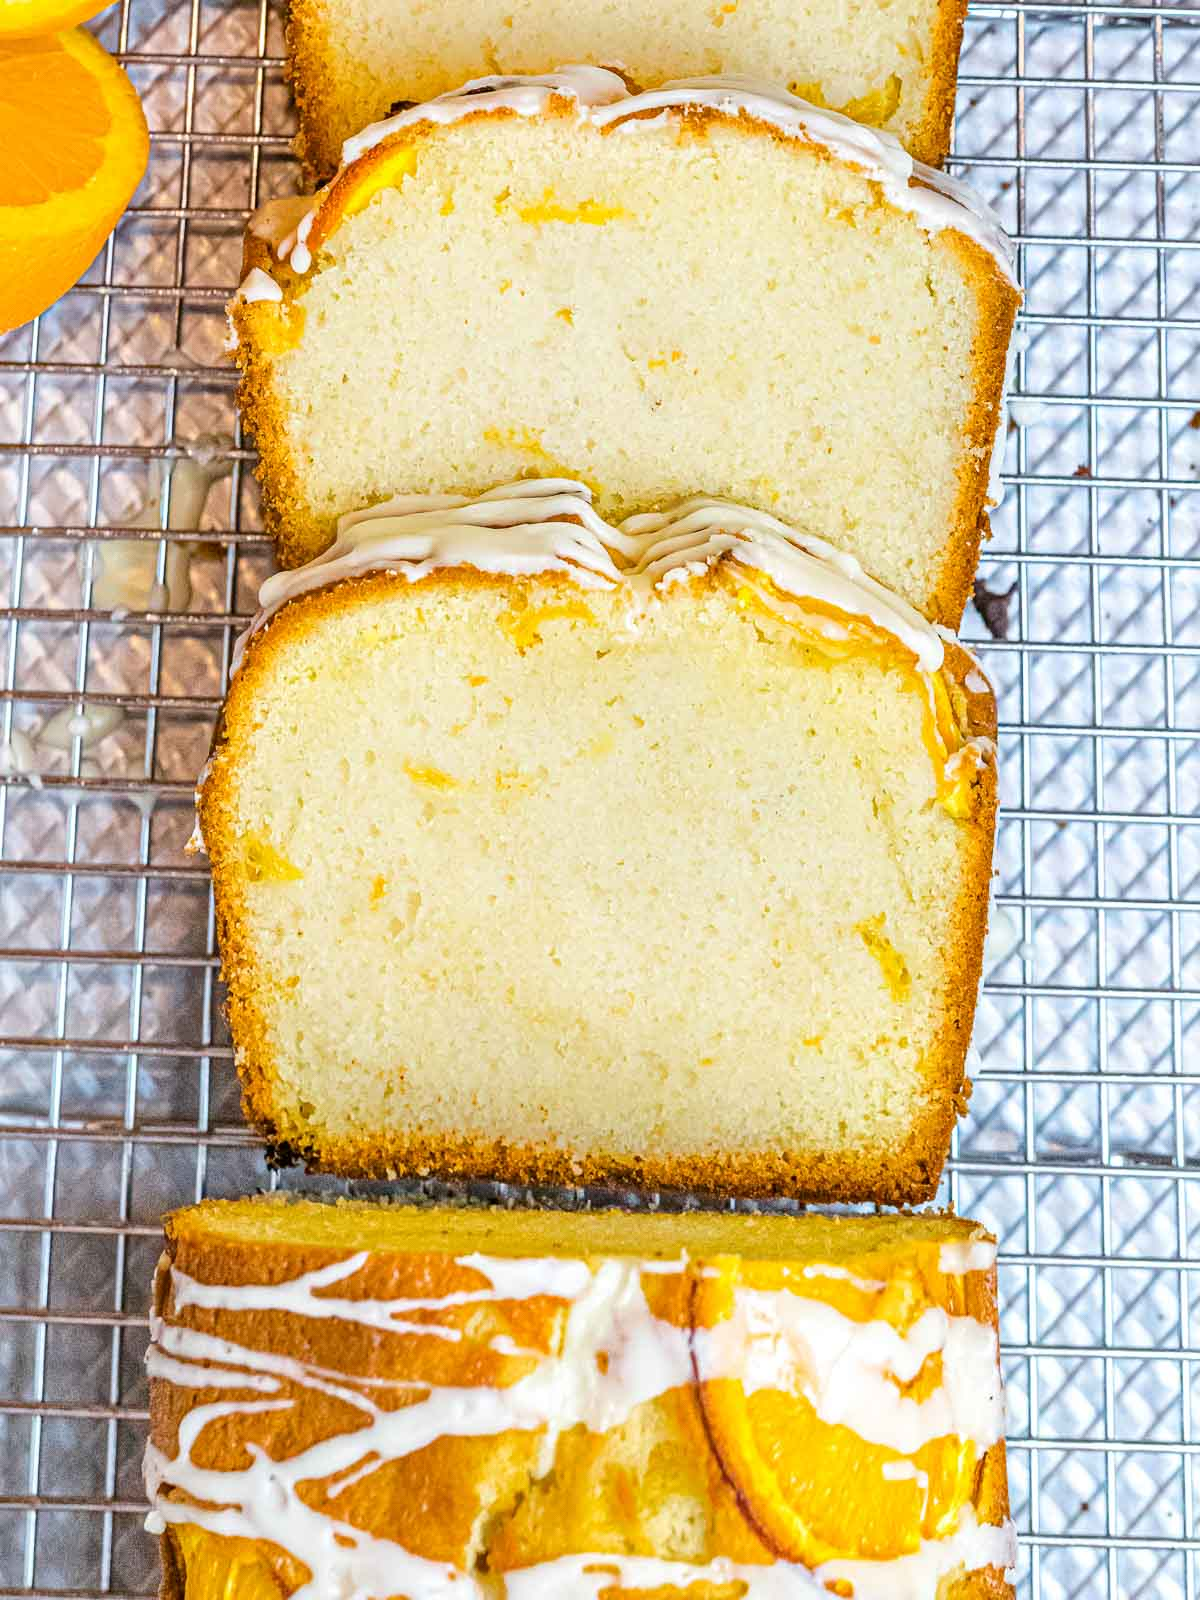 slices of orange pound cake covered in icing on top of a wire rack